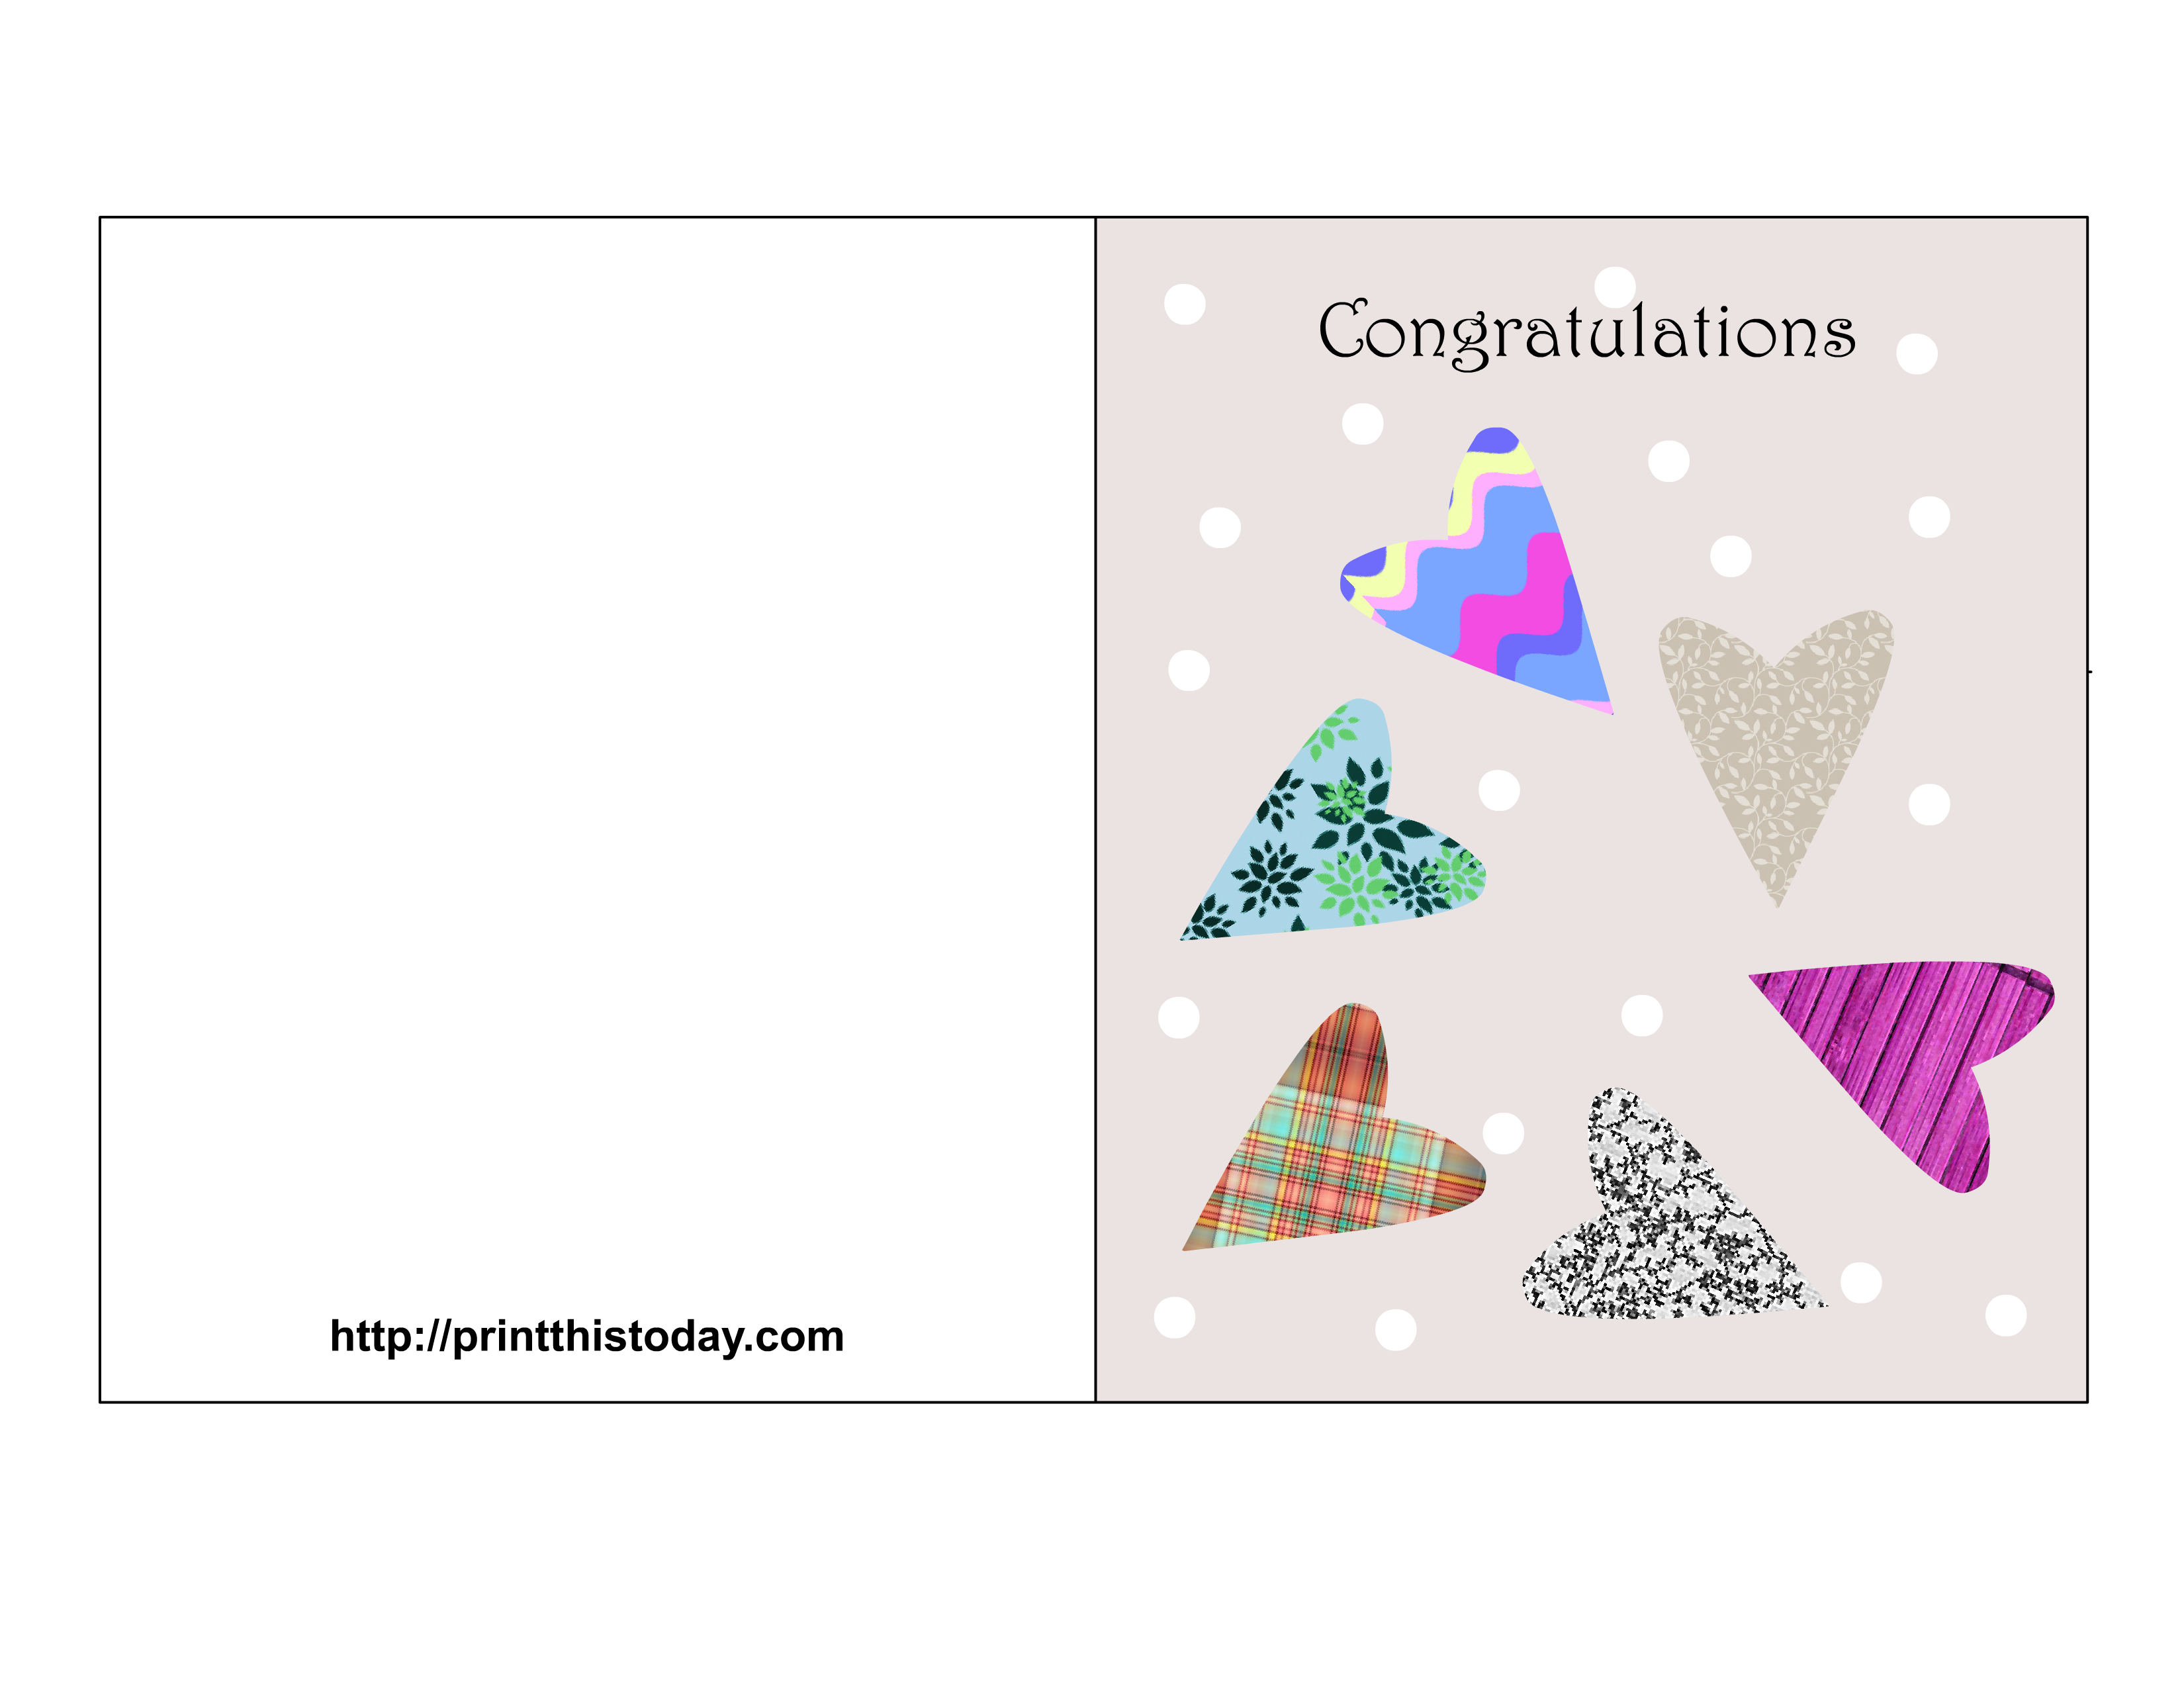 Greeting Card Designs Free Download Wmsib Info Png Wedding Congratulations Transparent Images 3766 Pngio